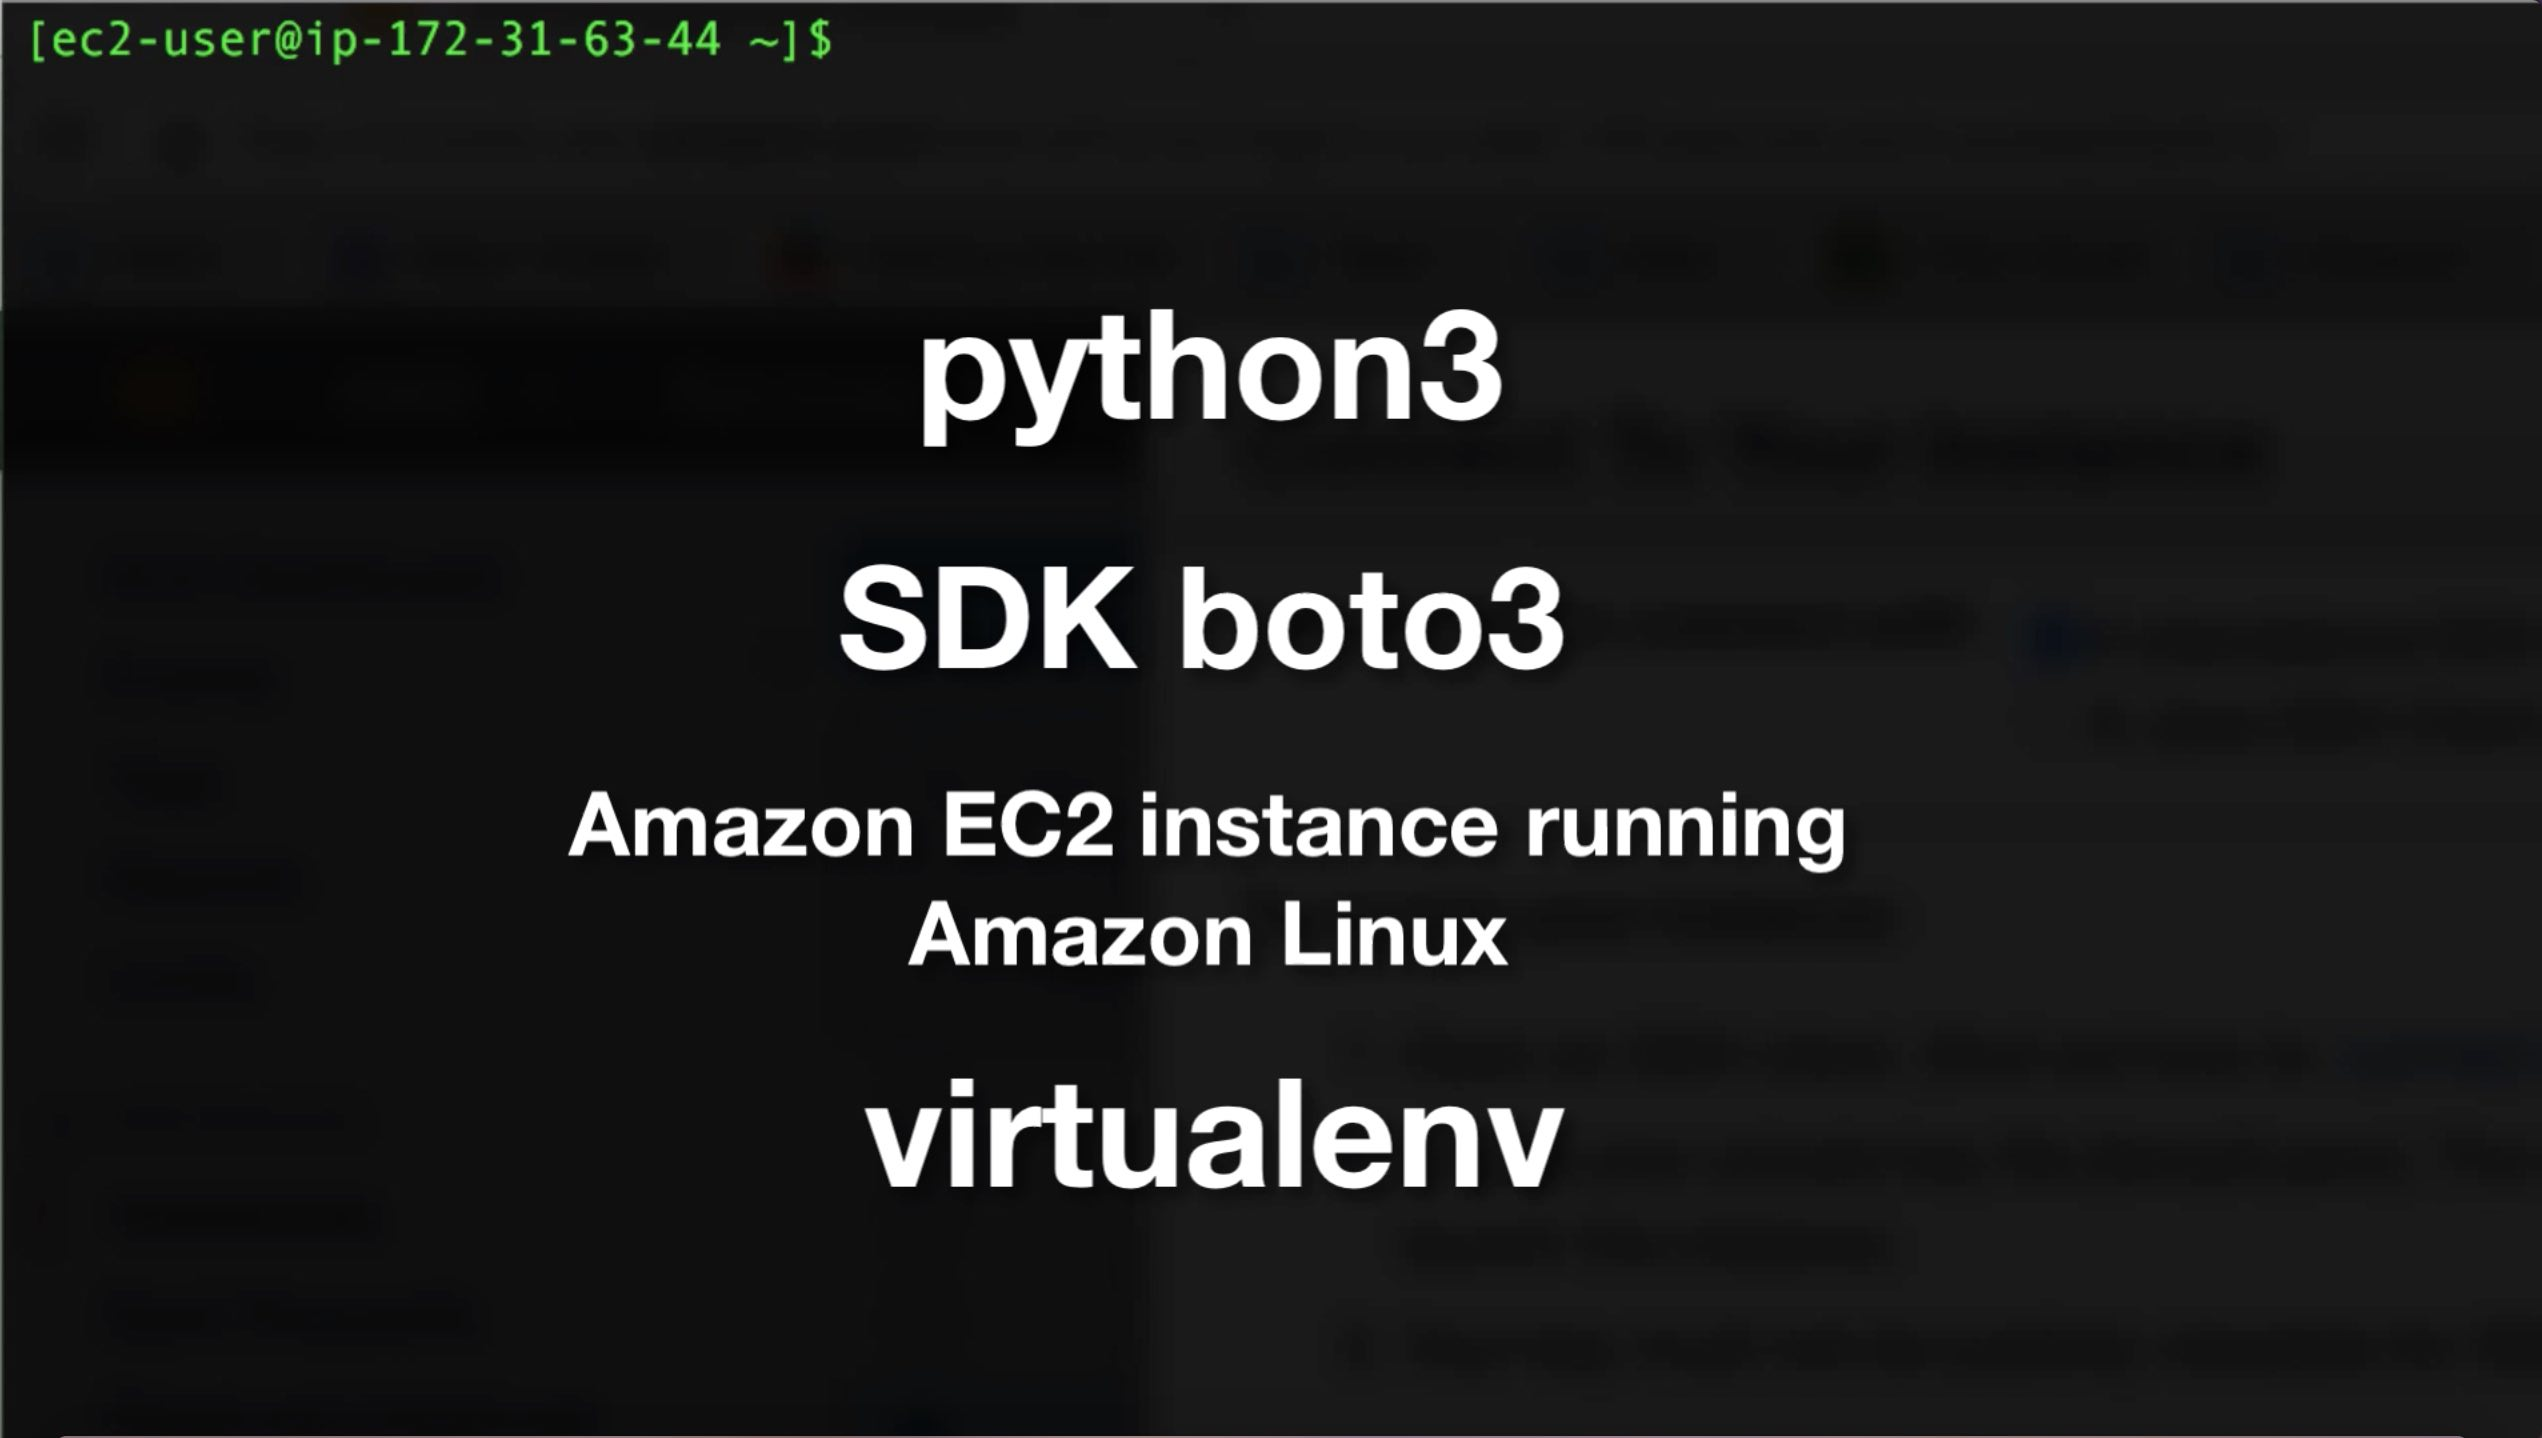 Create an isolated Python 3.4 environment with Boto 3 on EC2 using virtualenv